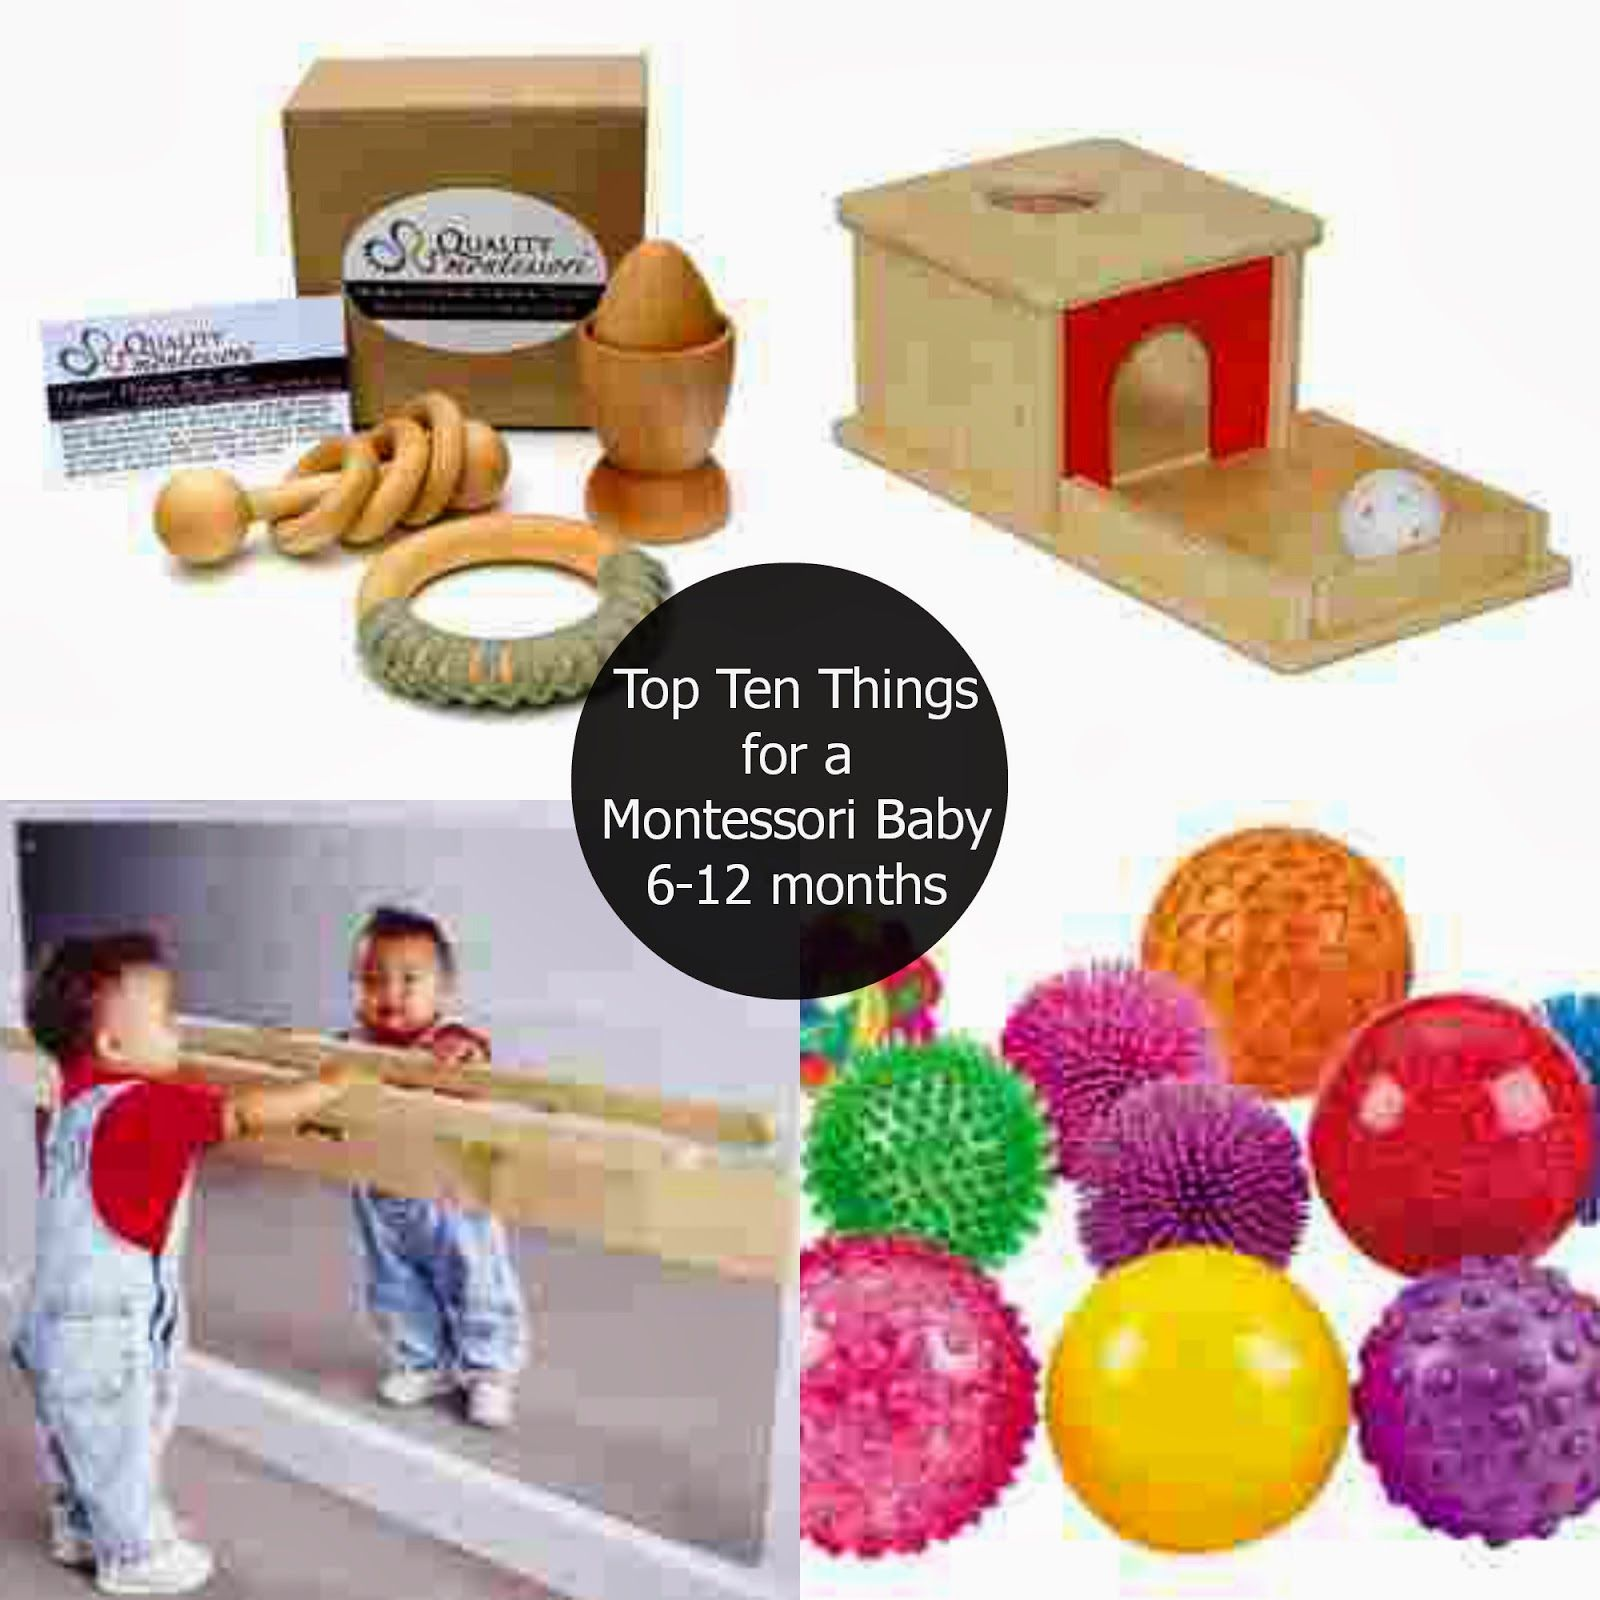 the montessori on a budget blog top 10 things for a montessori baby 6month 1 year. Black Bedroom Furniture Sets. Home Design Ideas